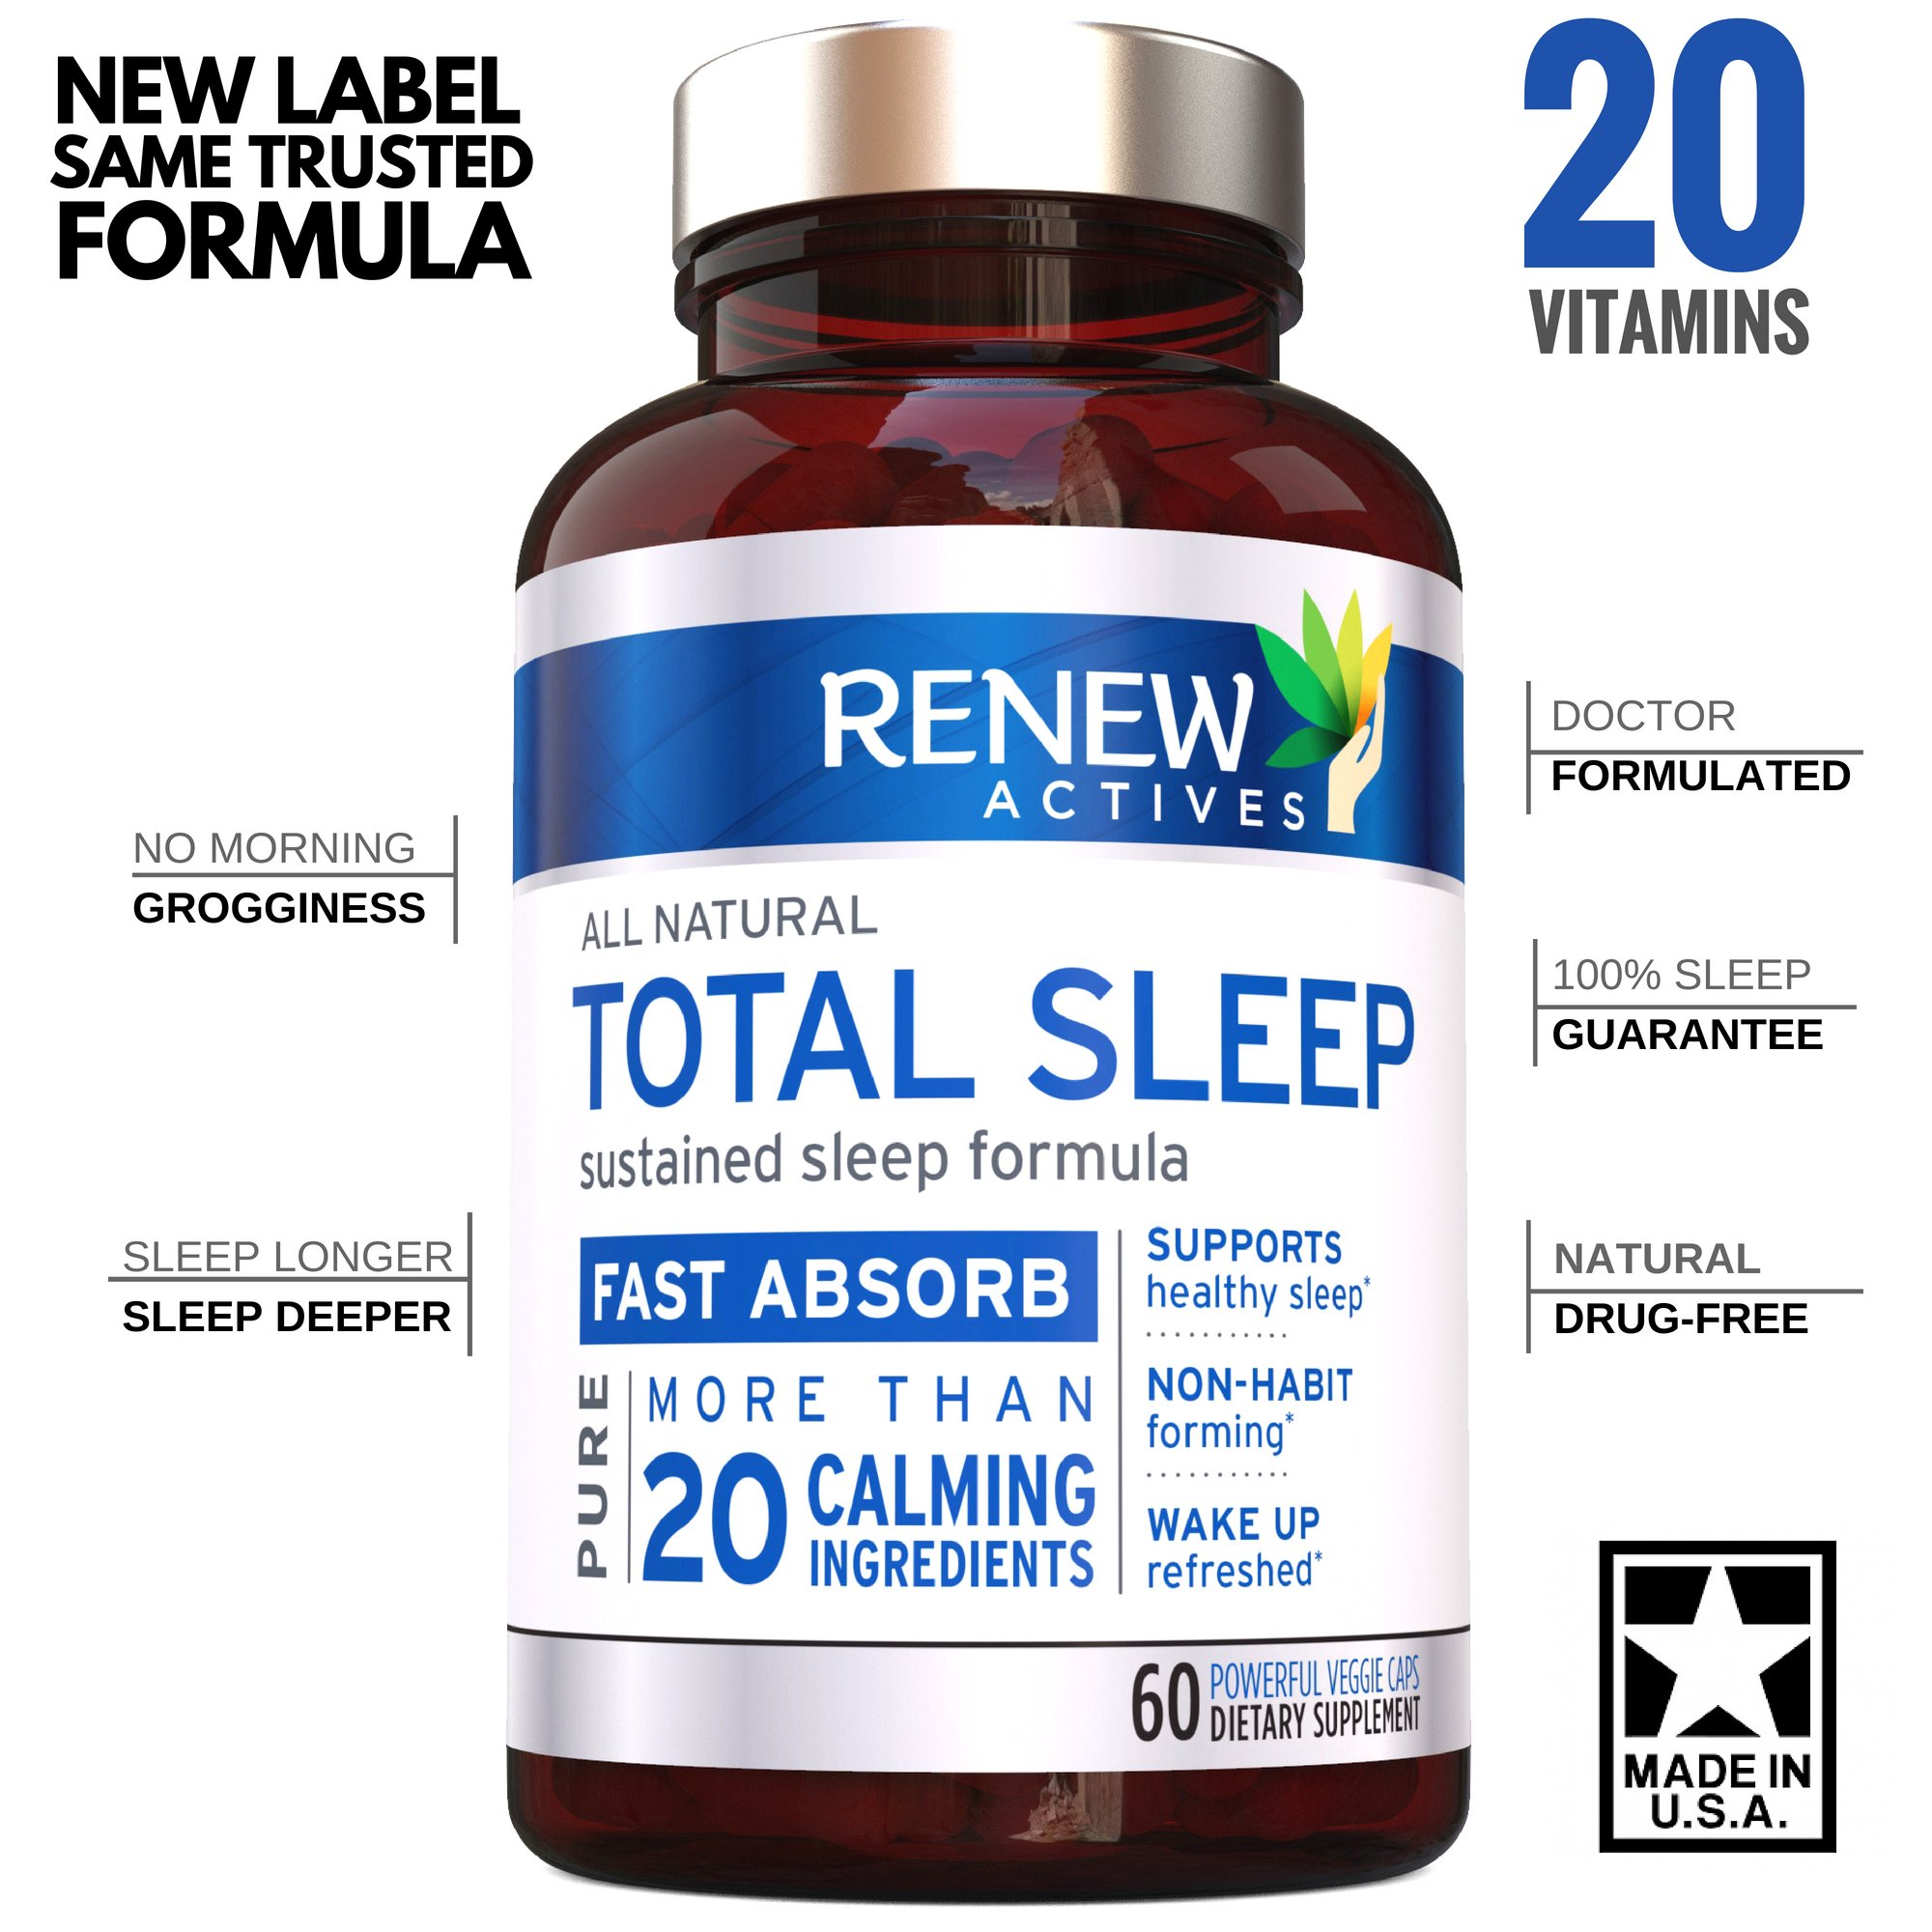 All Natural Sleep Aid Supplement. Non-Habit Forming Sleeping Pill. Our Guarantee is A Deeper, Longer & Restful Sleep! Starting Tonight Get the Peaceful & Natural Sleep You Deserve! by Renew Actives (Image #1)